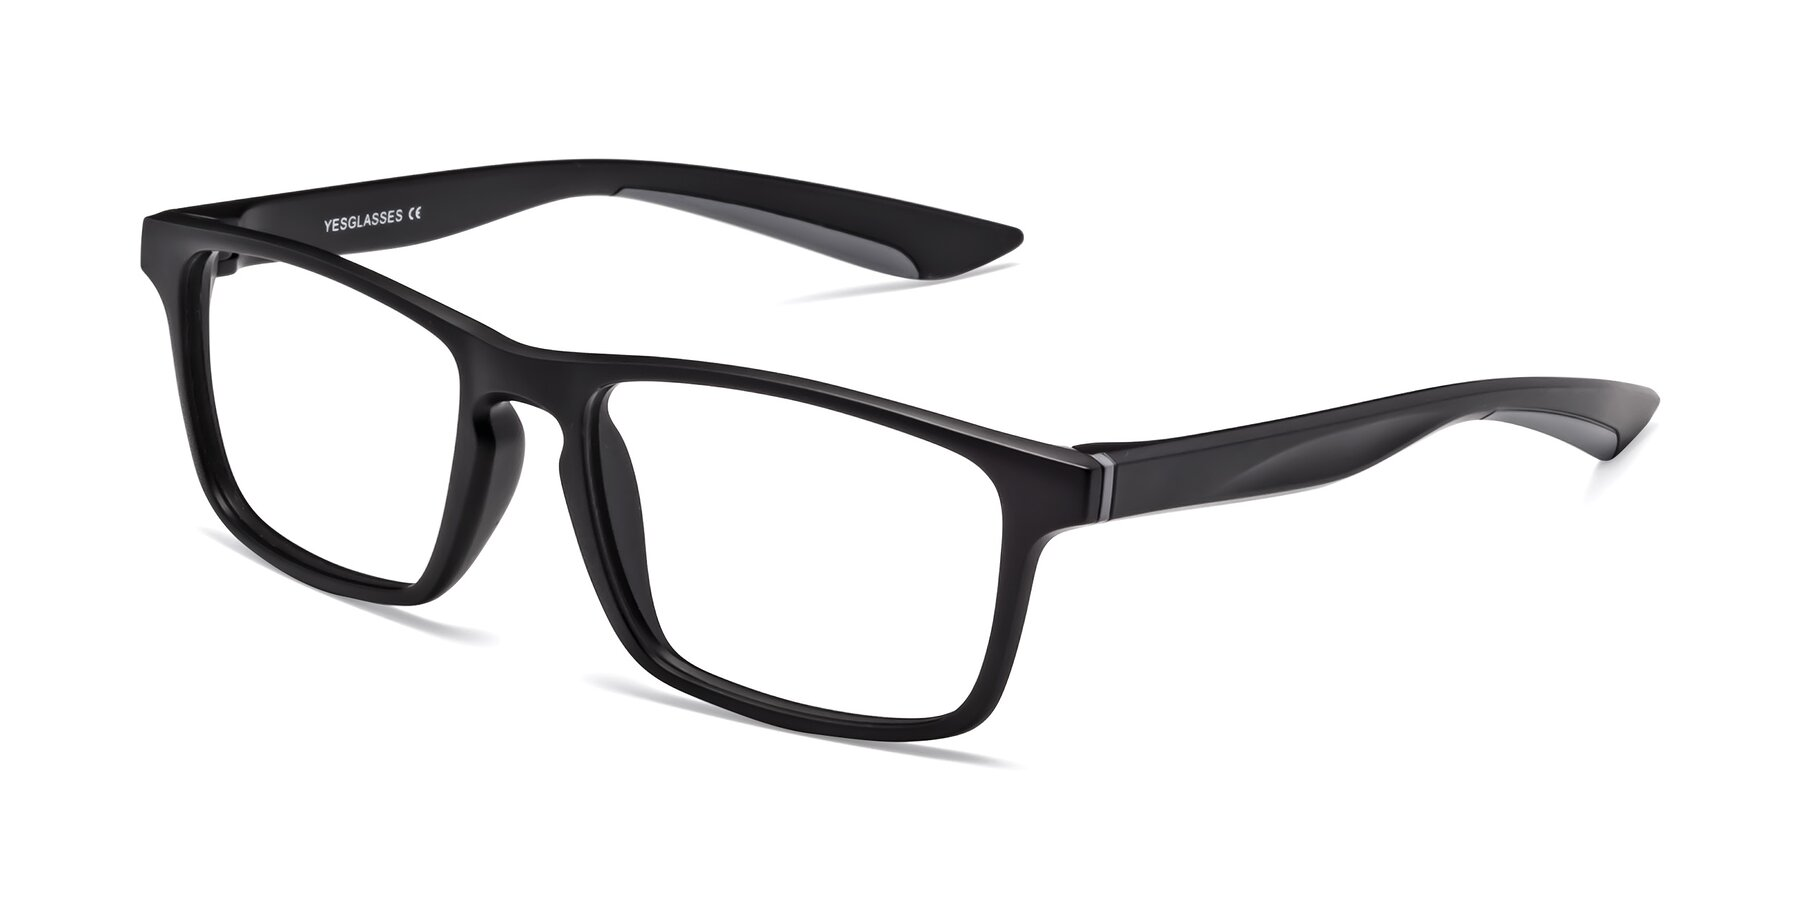 Angle of Passion in Matte Black-Gray with Clear Blue Light Blocking Lenses